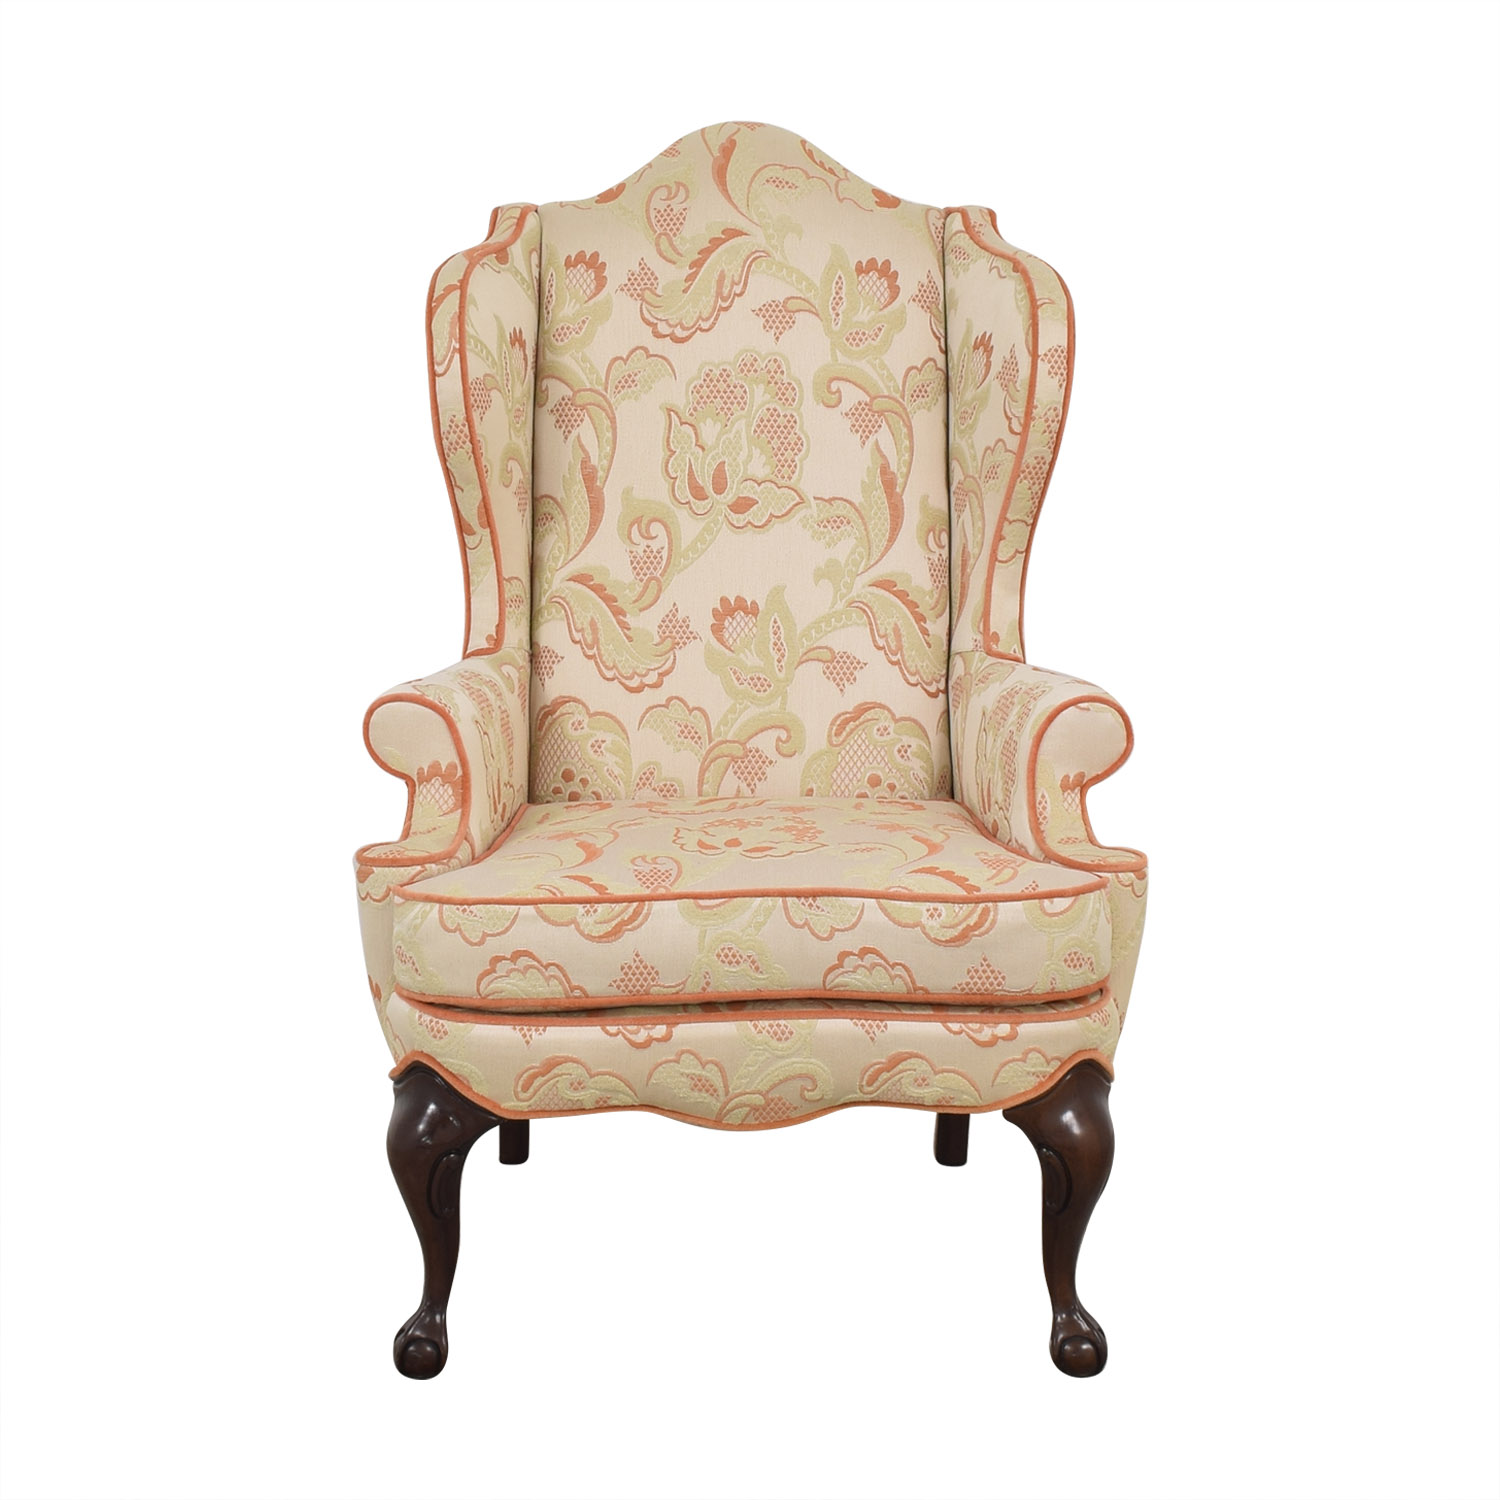 Macy's Macy's Upholstered Wingback Chair on sale